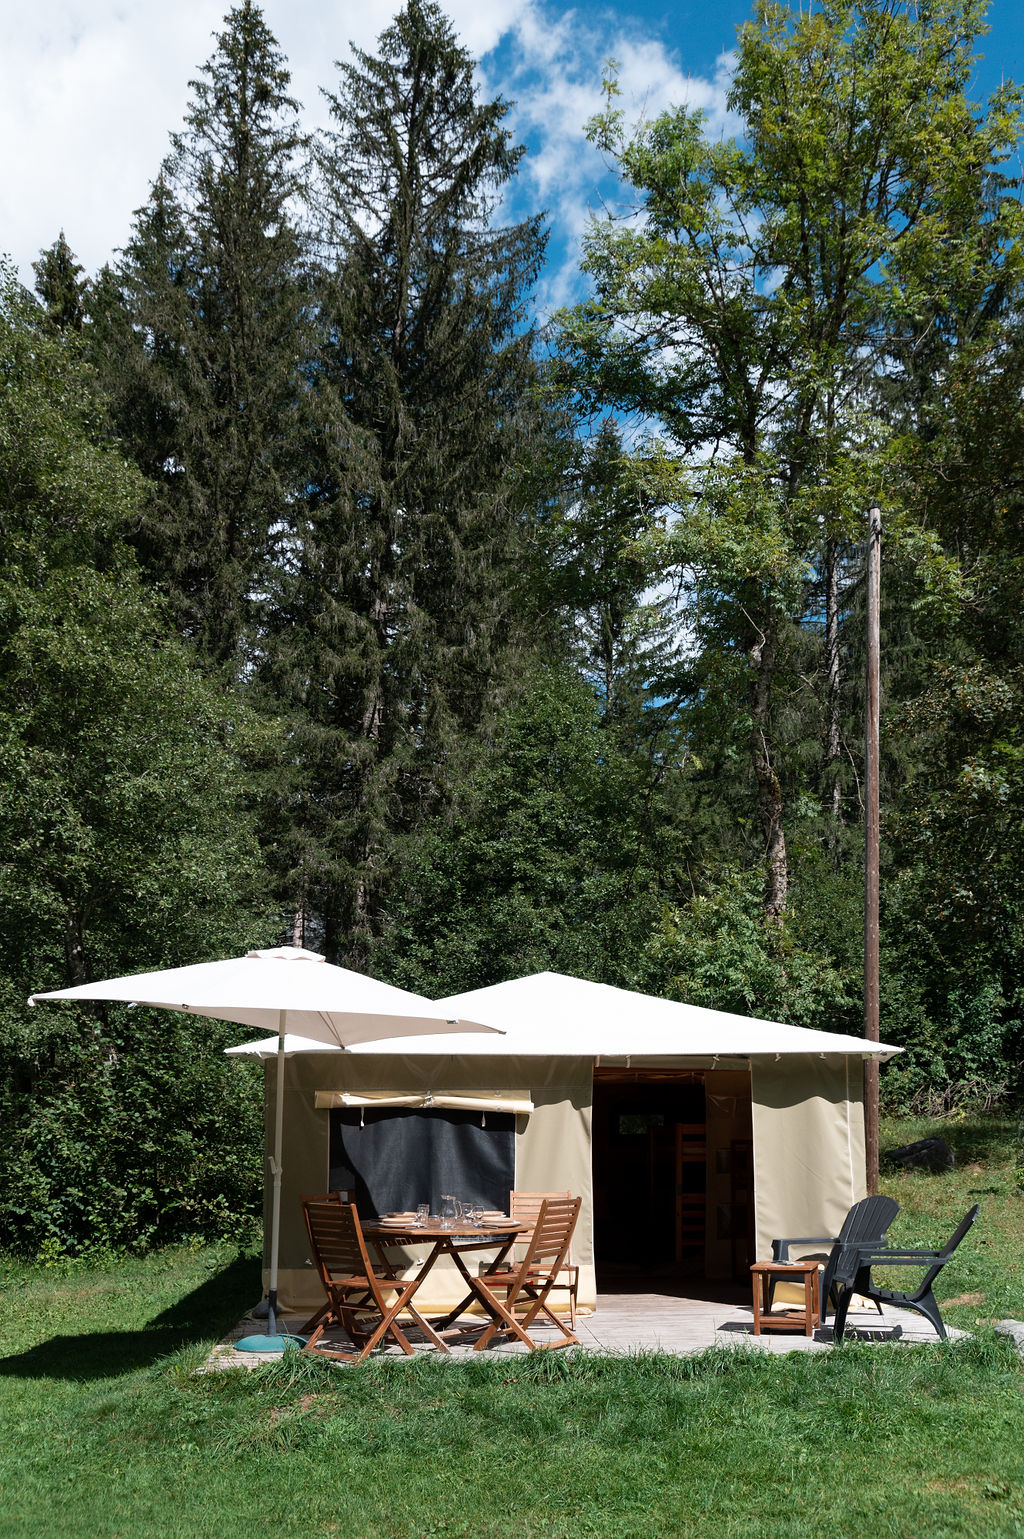 camping-le-pelly-slide-bungalow-toile-caraibes-13